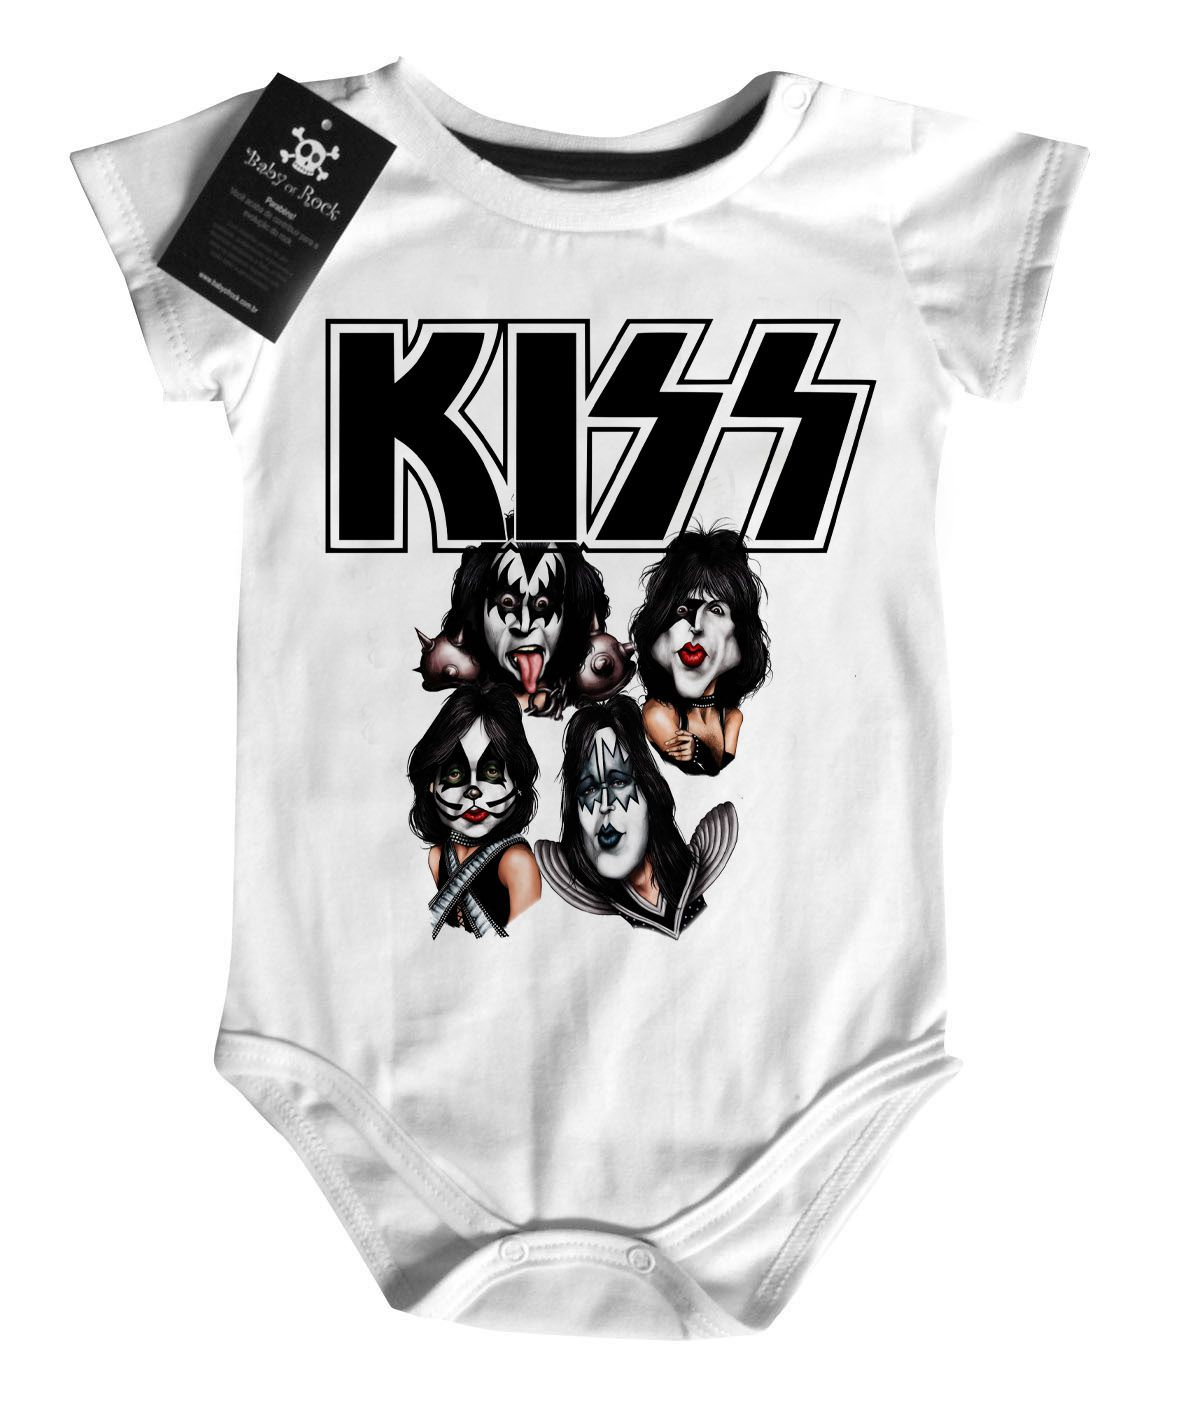 Body Bebe de Rock KISS - White  - Baby Monster S/A